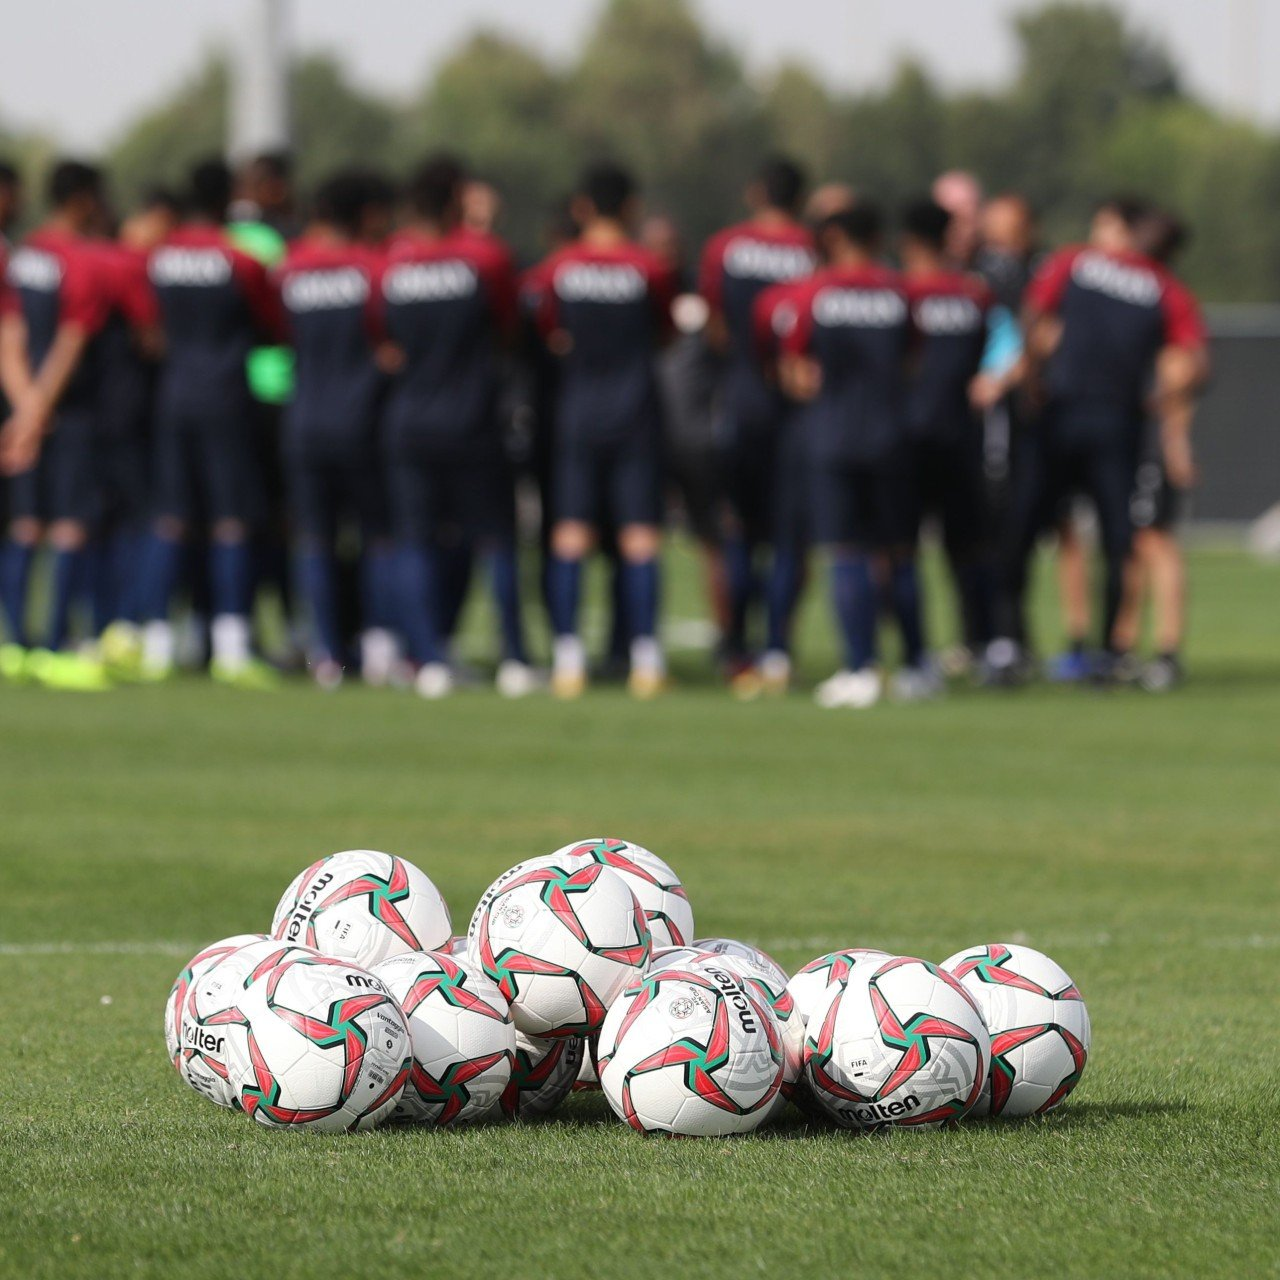 AFC Asian Cup: Monday's schedule, fixtures, odds and